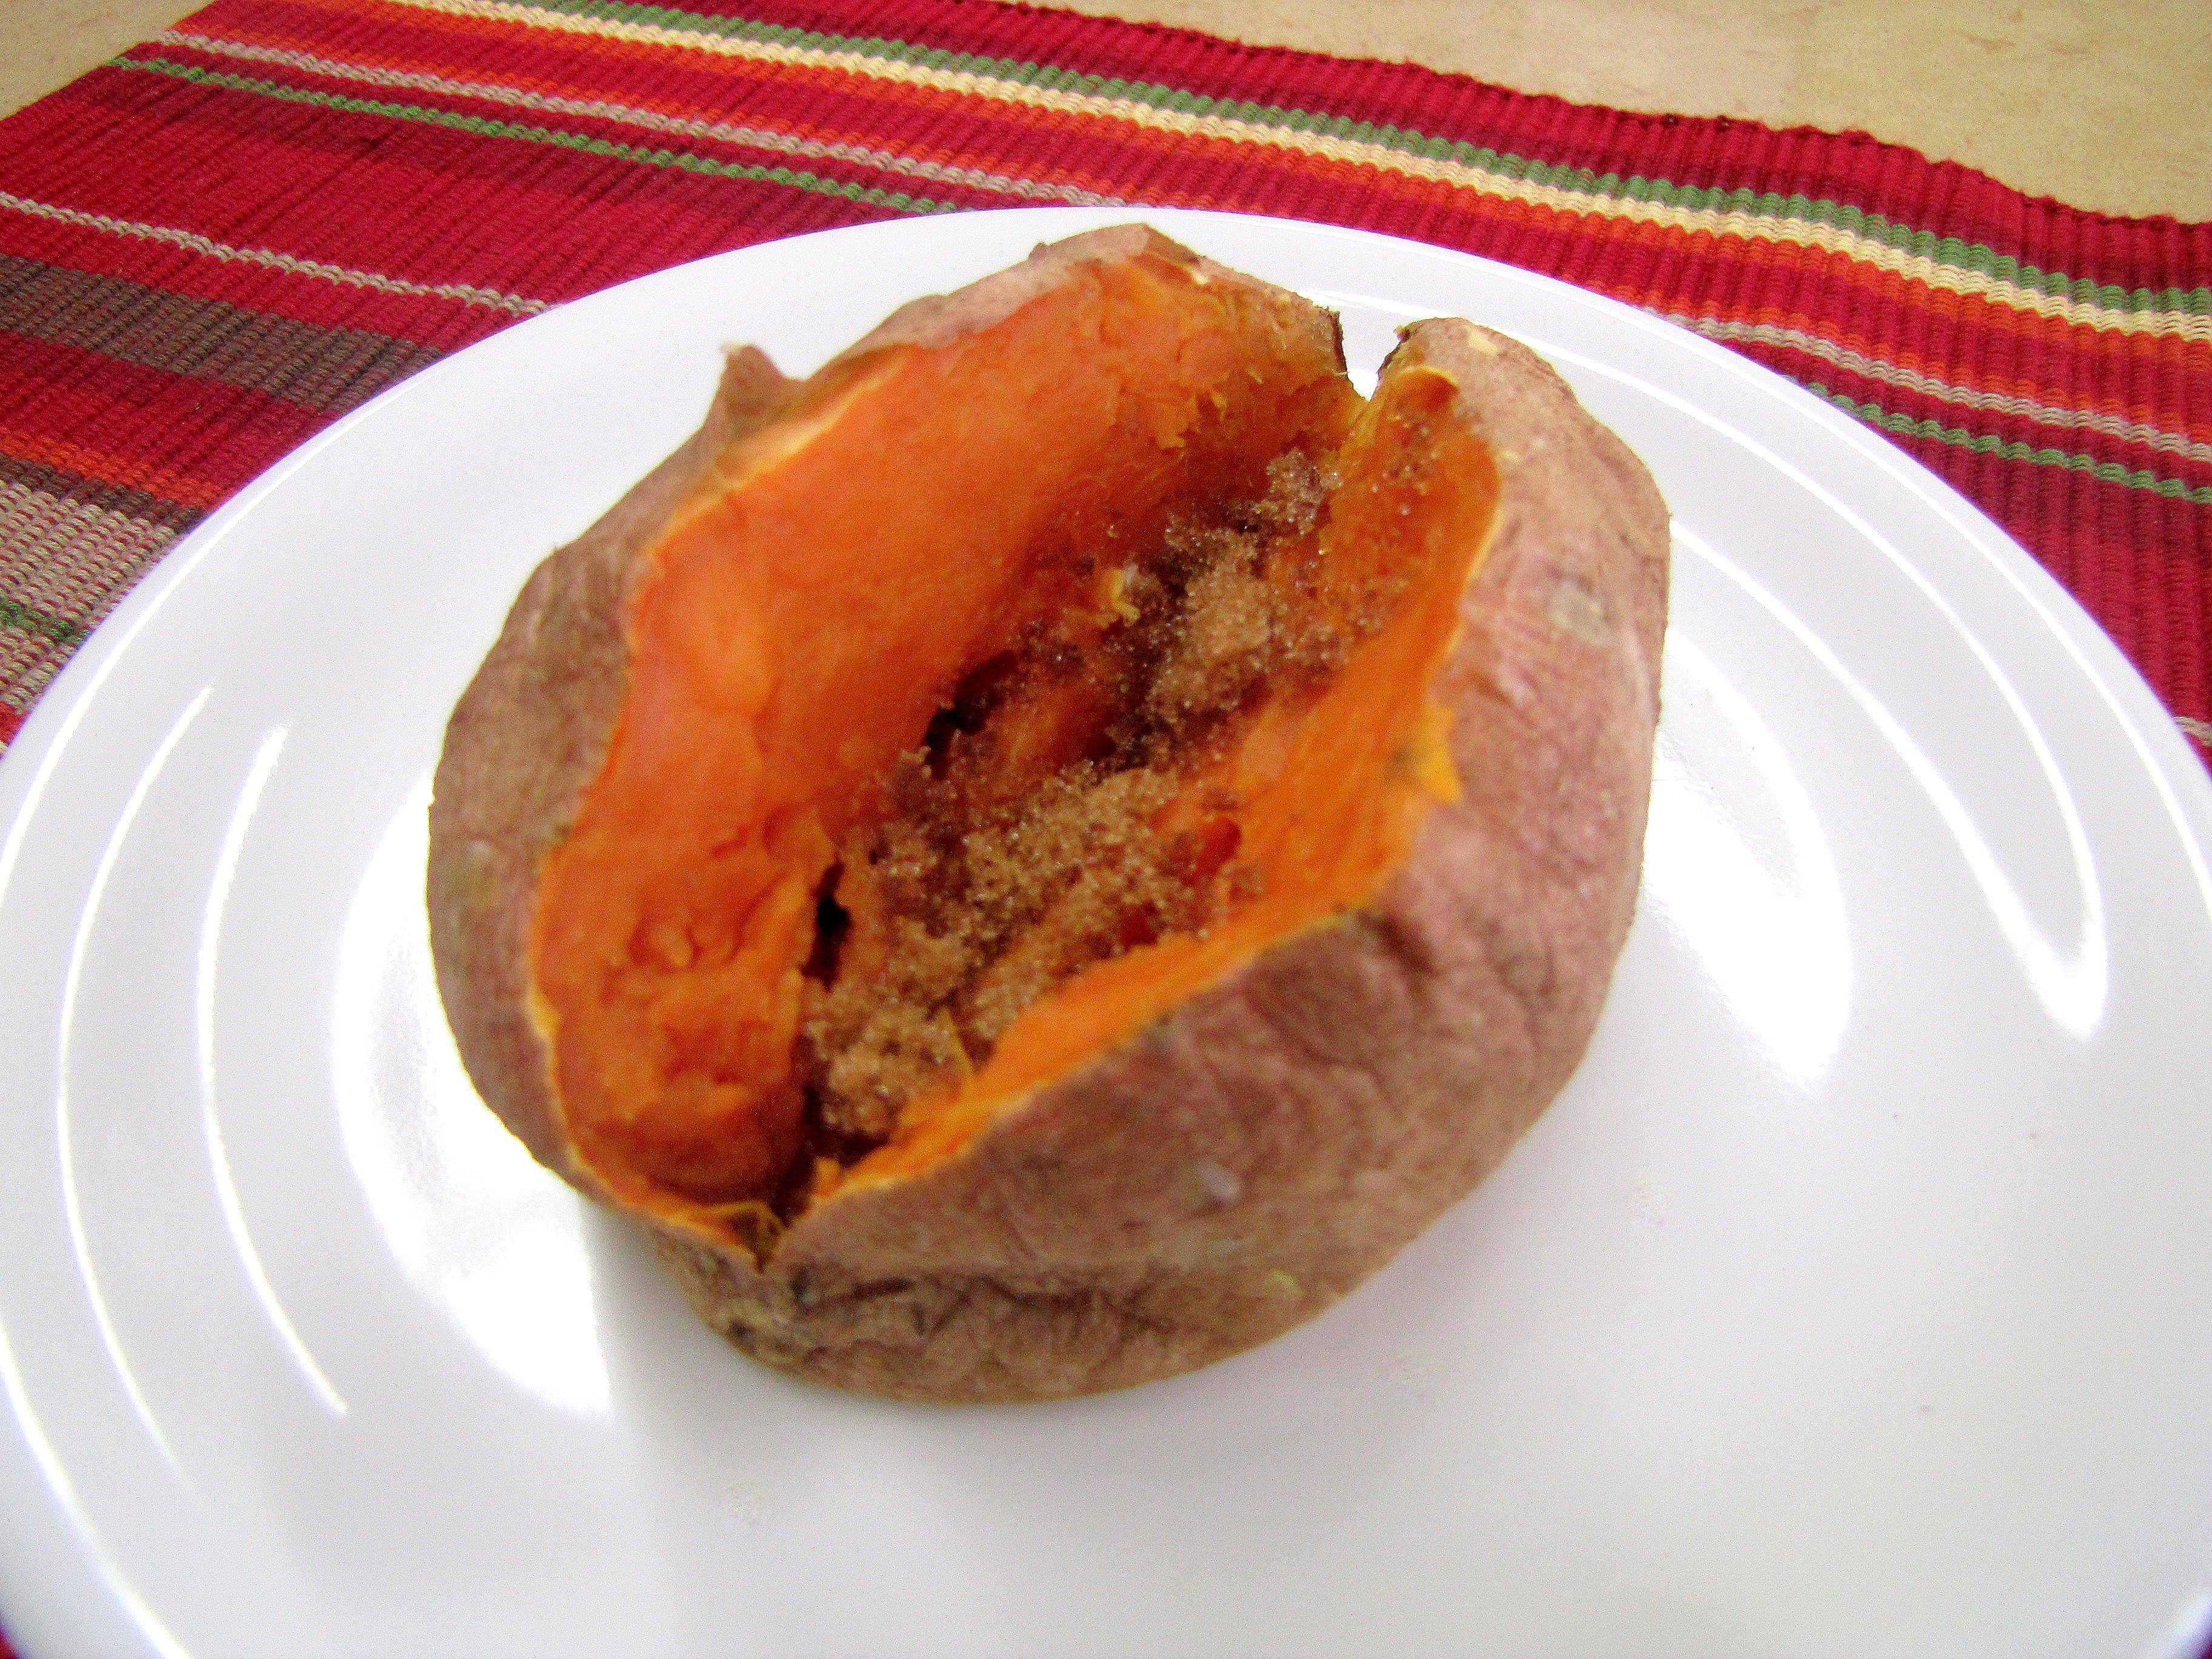 Baked Sweet Potato Microwave  Microwave Sweet Potato or Baked Potato — Food and Nutrition